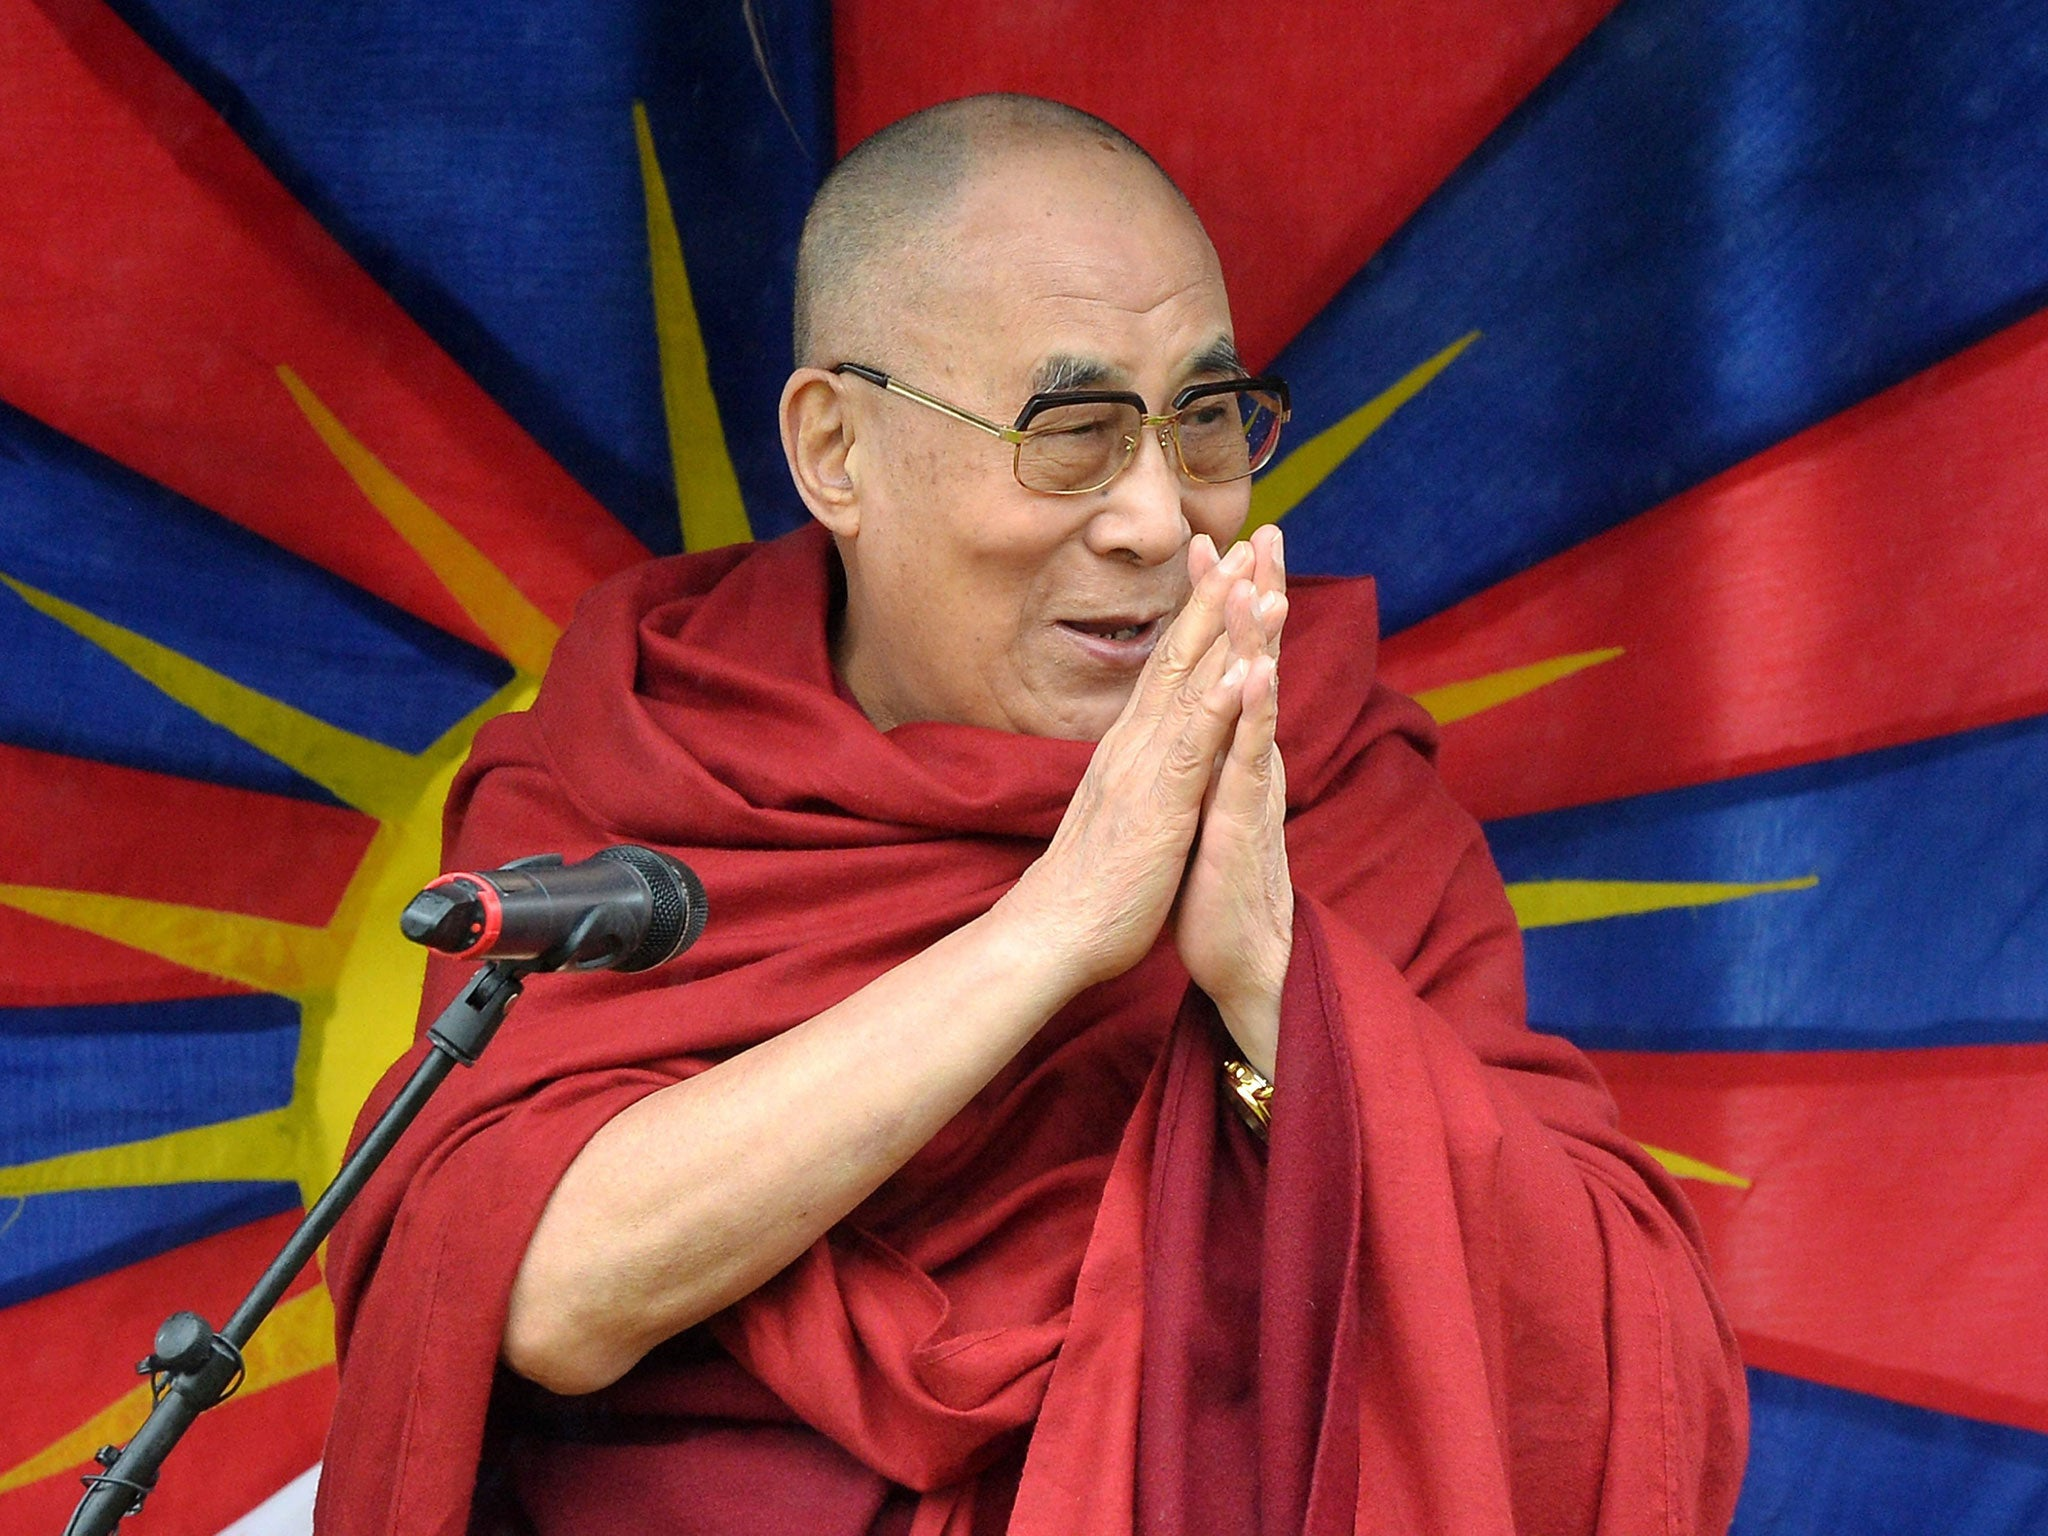 dalia lama essays The dalai lama is the supreme head of tibetan buddhism, and the leaders of all four schools consider the dalai lama to be the highest lama of the tibetan traditions he is often granted the style his holiness (or hh) before his title.